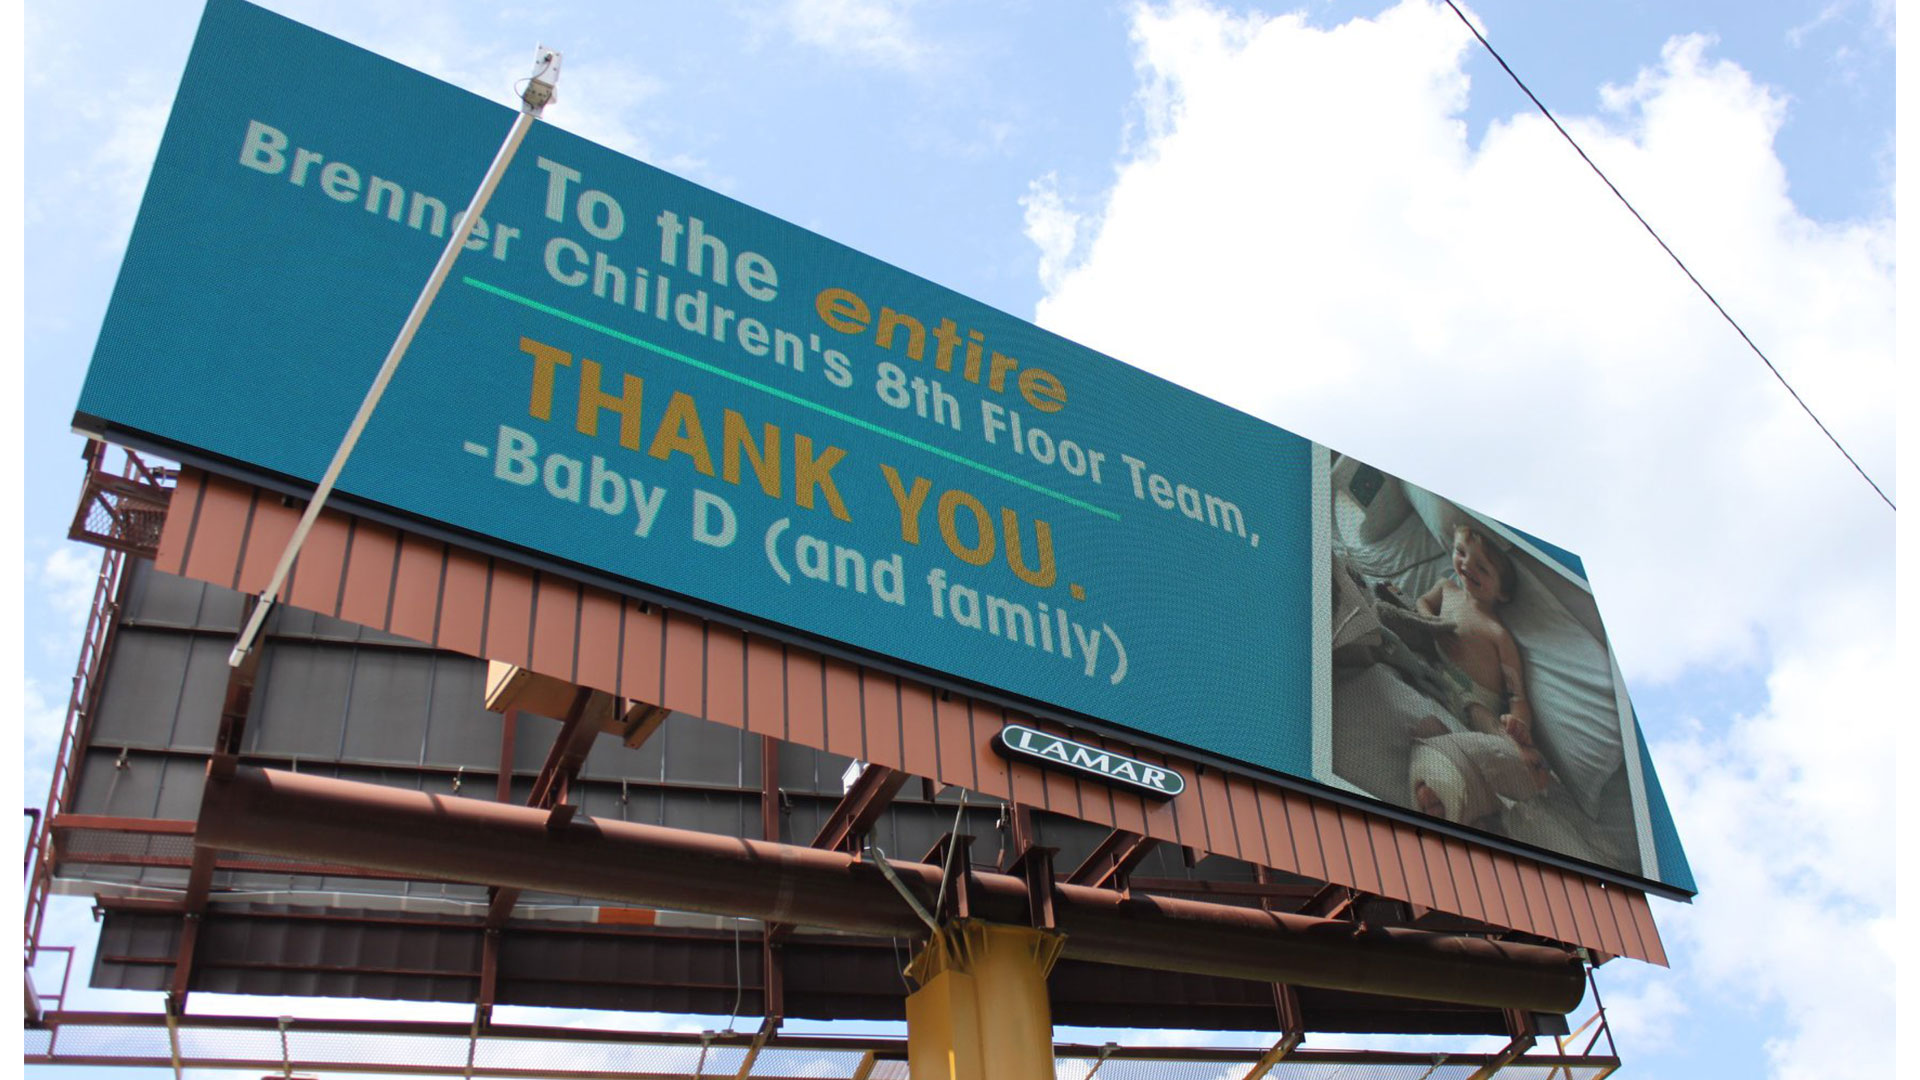 Hospital Billboard Thank You